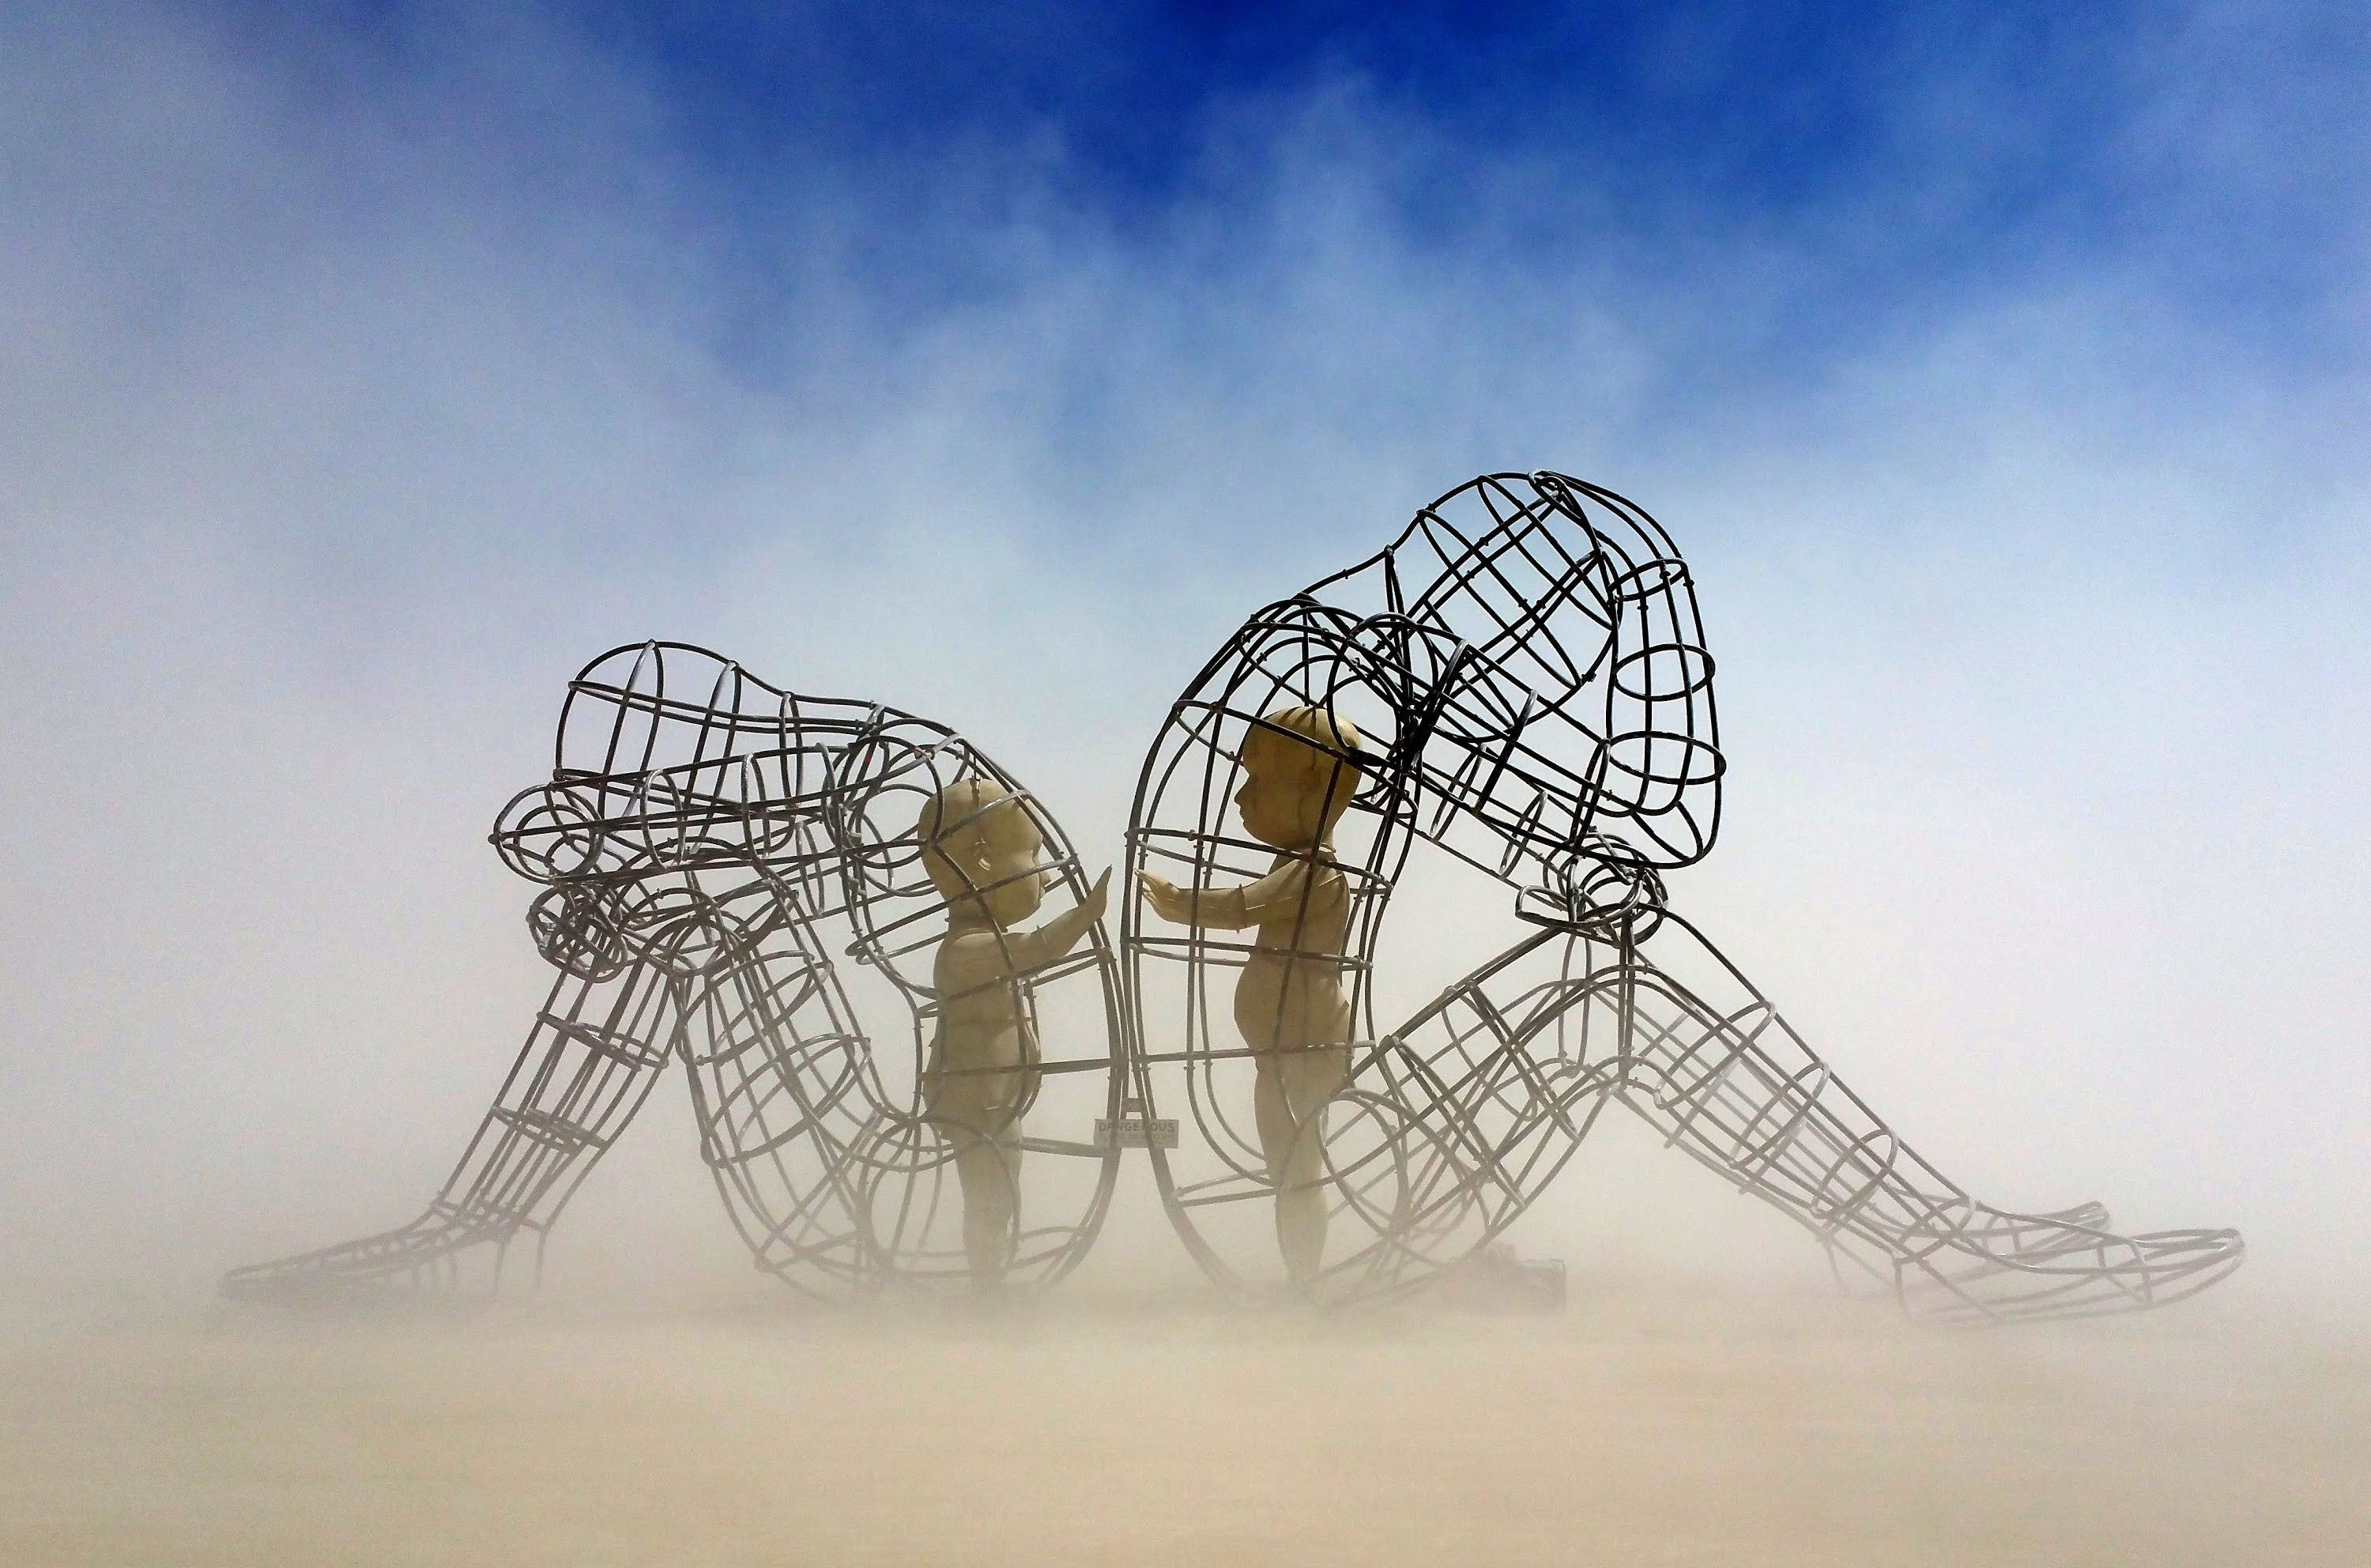 What Are Some Examples Of Really Thoughtprovoking Art Quora - Thought provoking burning man sculpture shows inner children trapped inside adult bodies